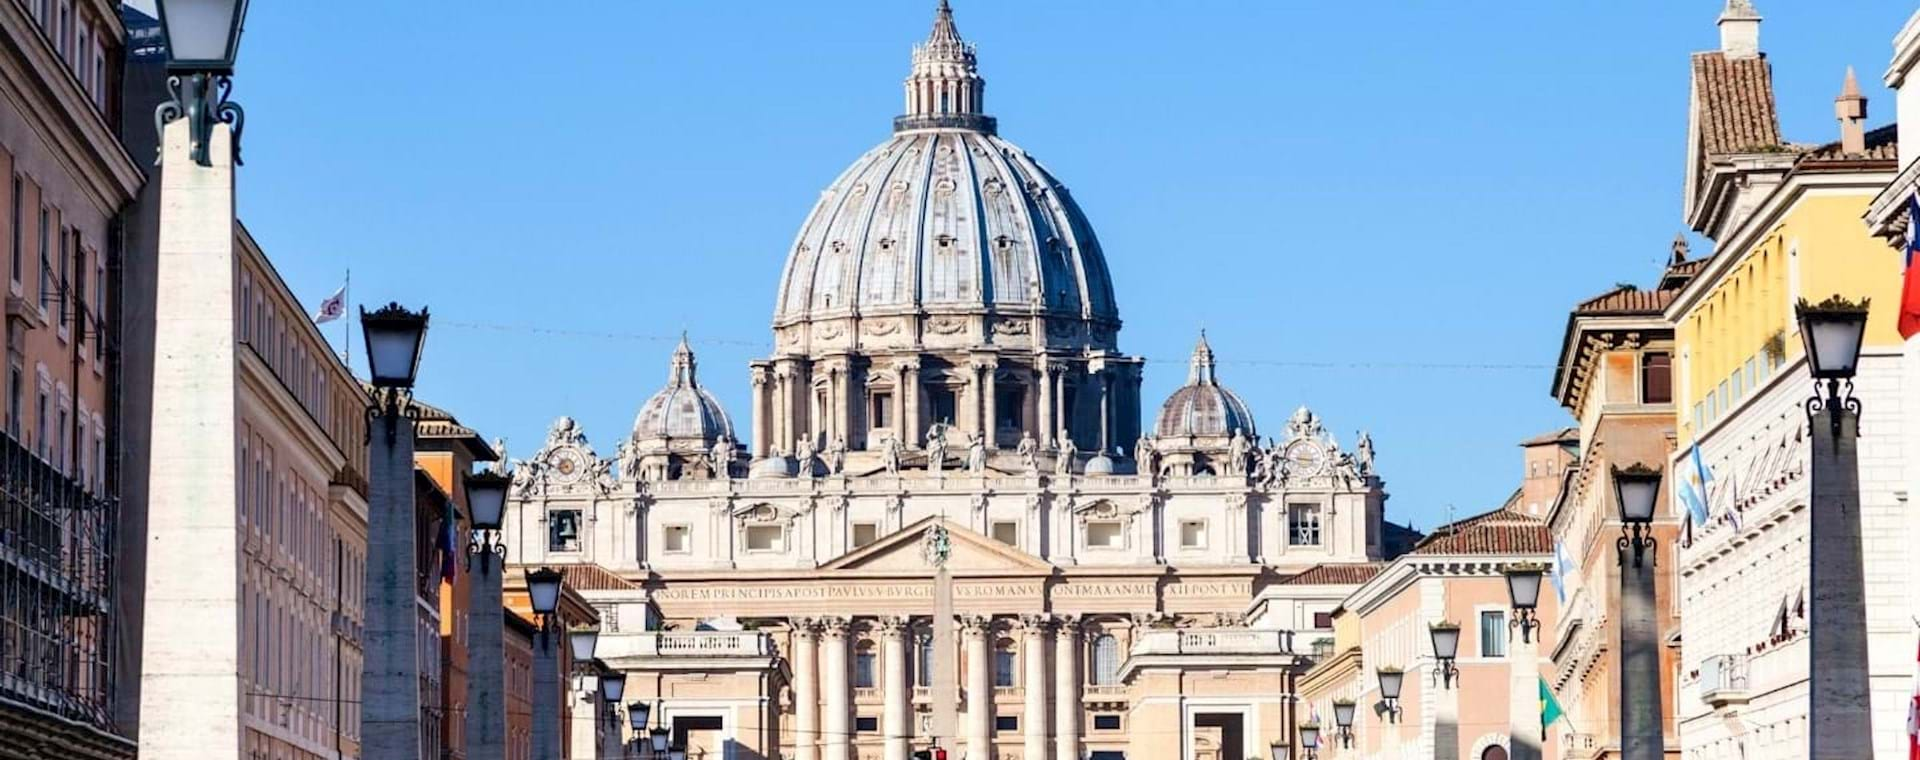 Complete Vatican Museums Tour with Sistine Chapel, Bramante Staircase & St. Peter's Basilica